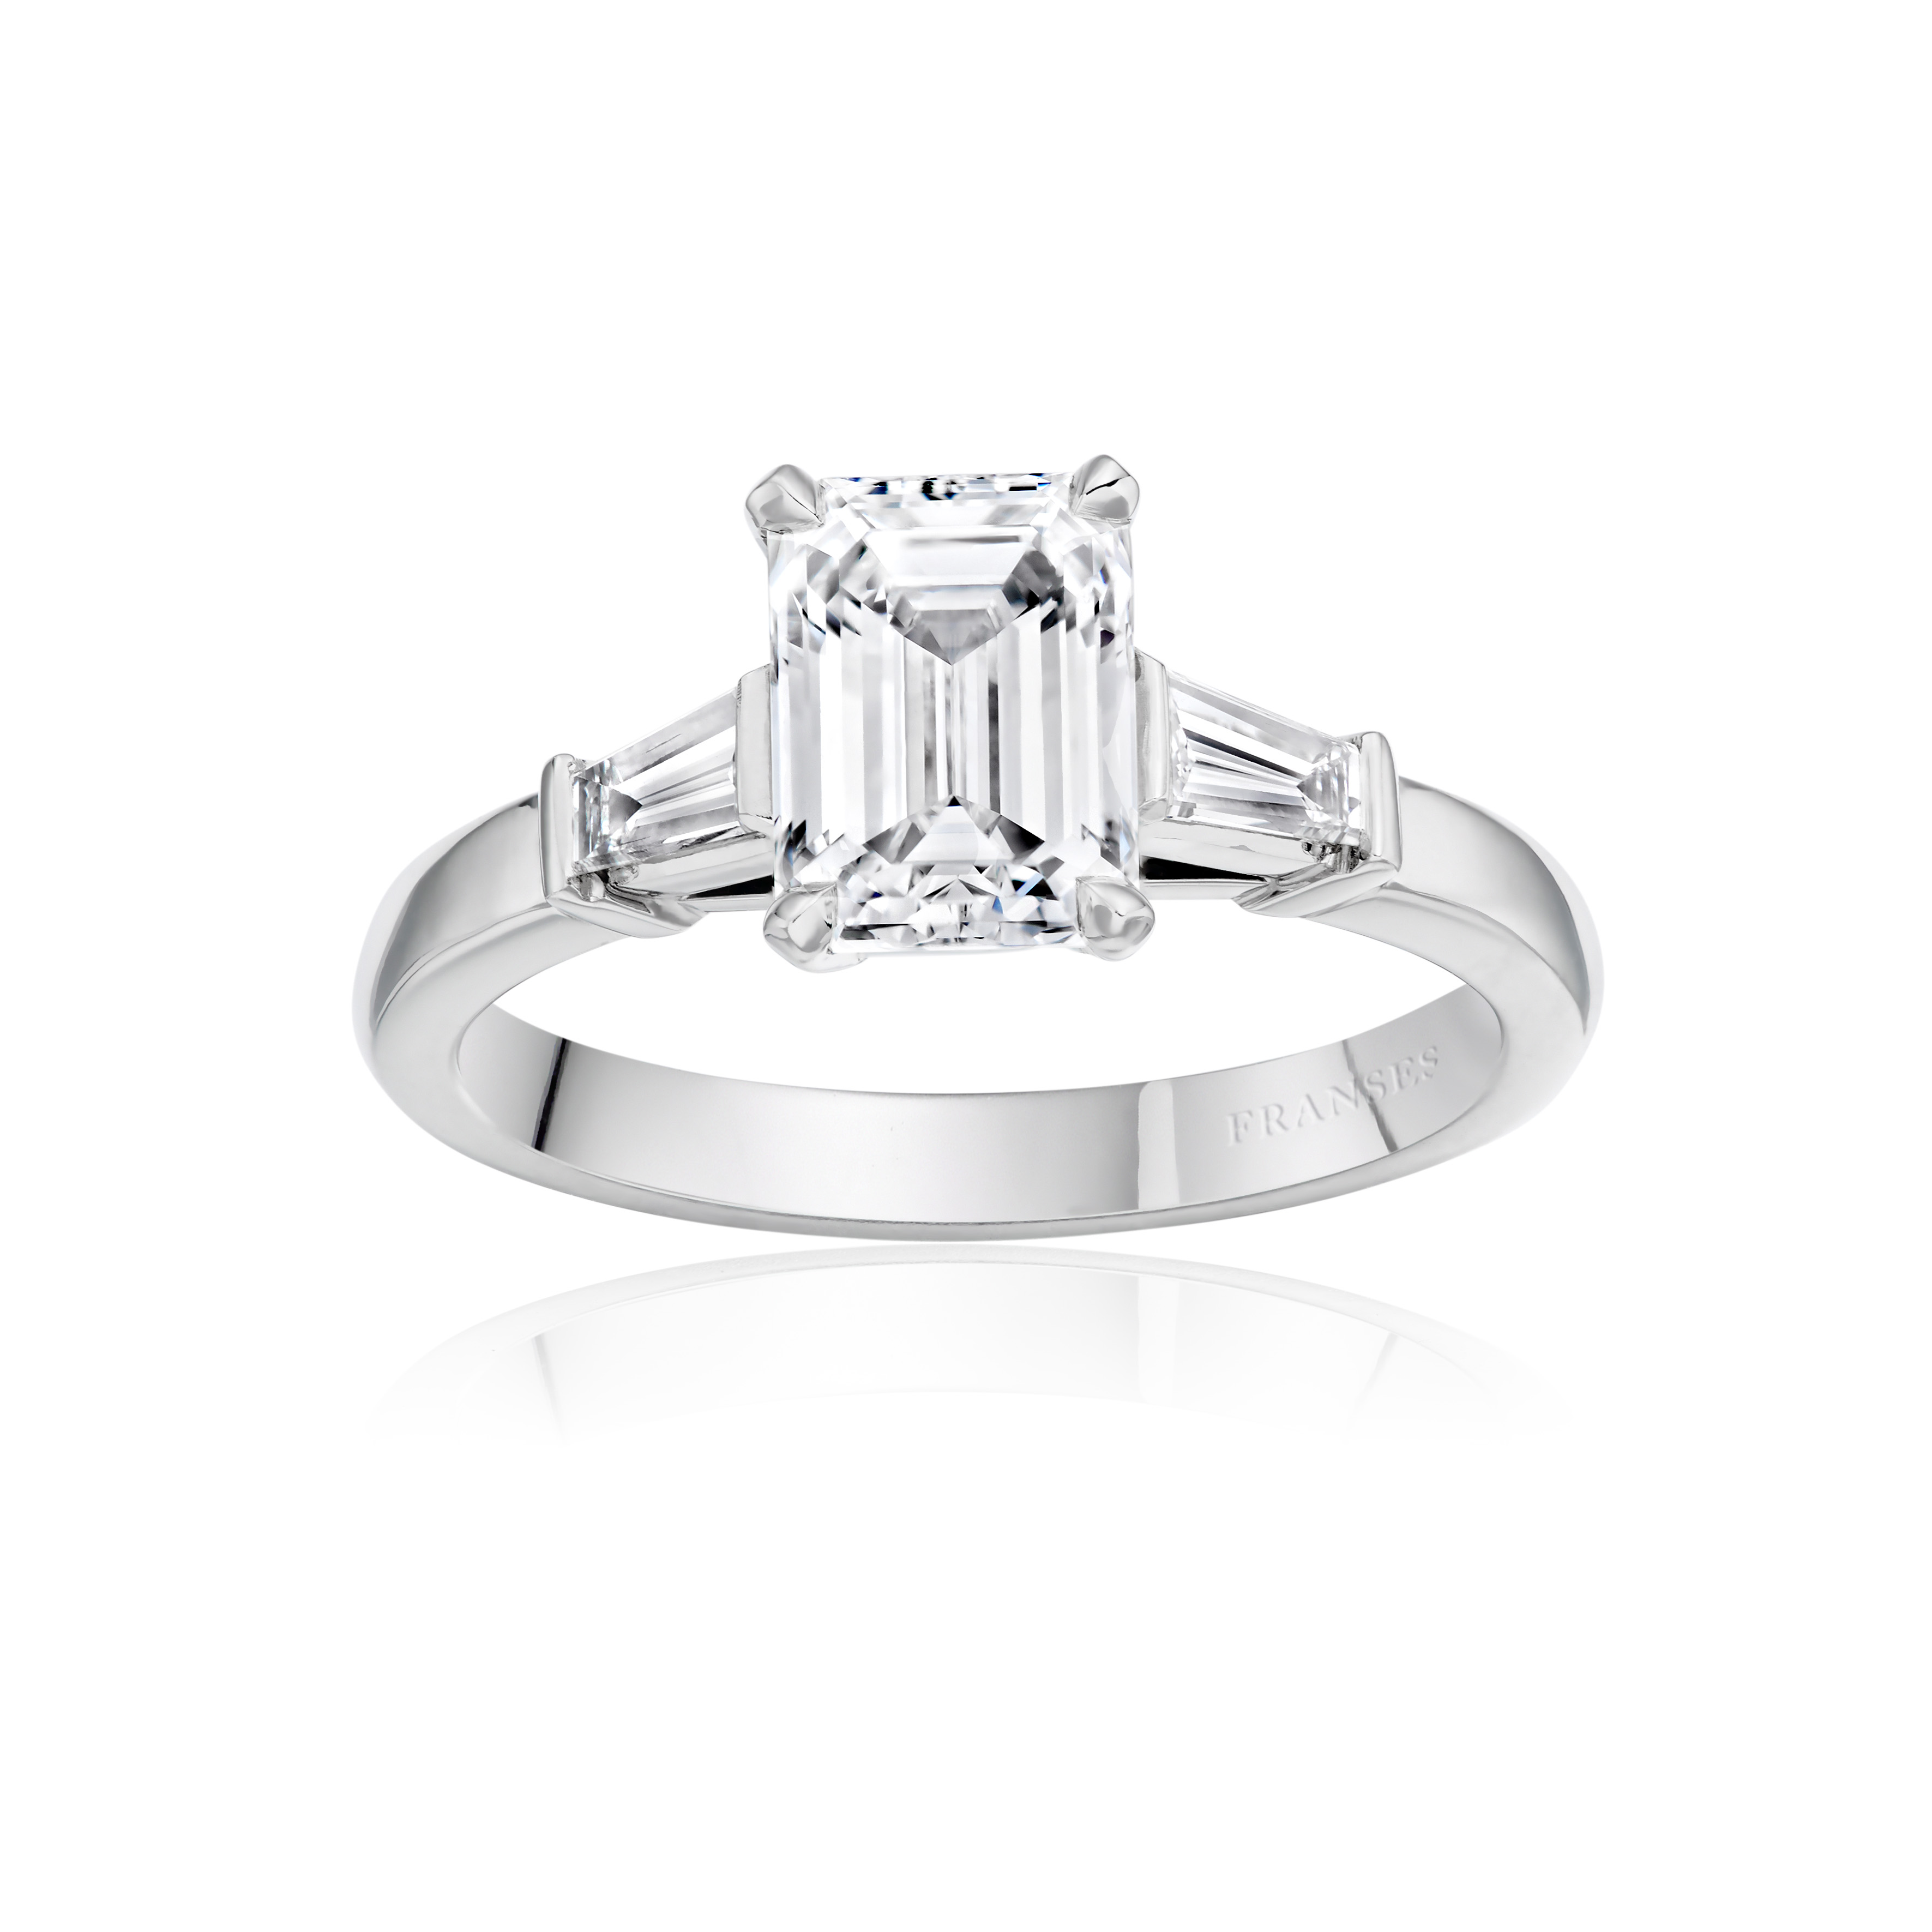 Engagement - 4th Generation Jewellers - Specialising in Fine Diamonds